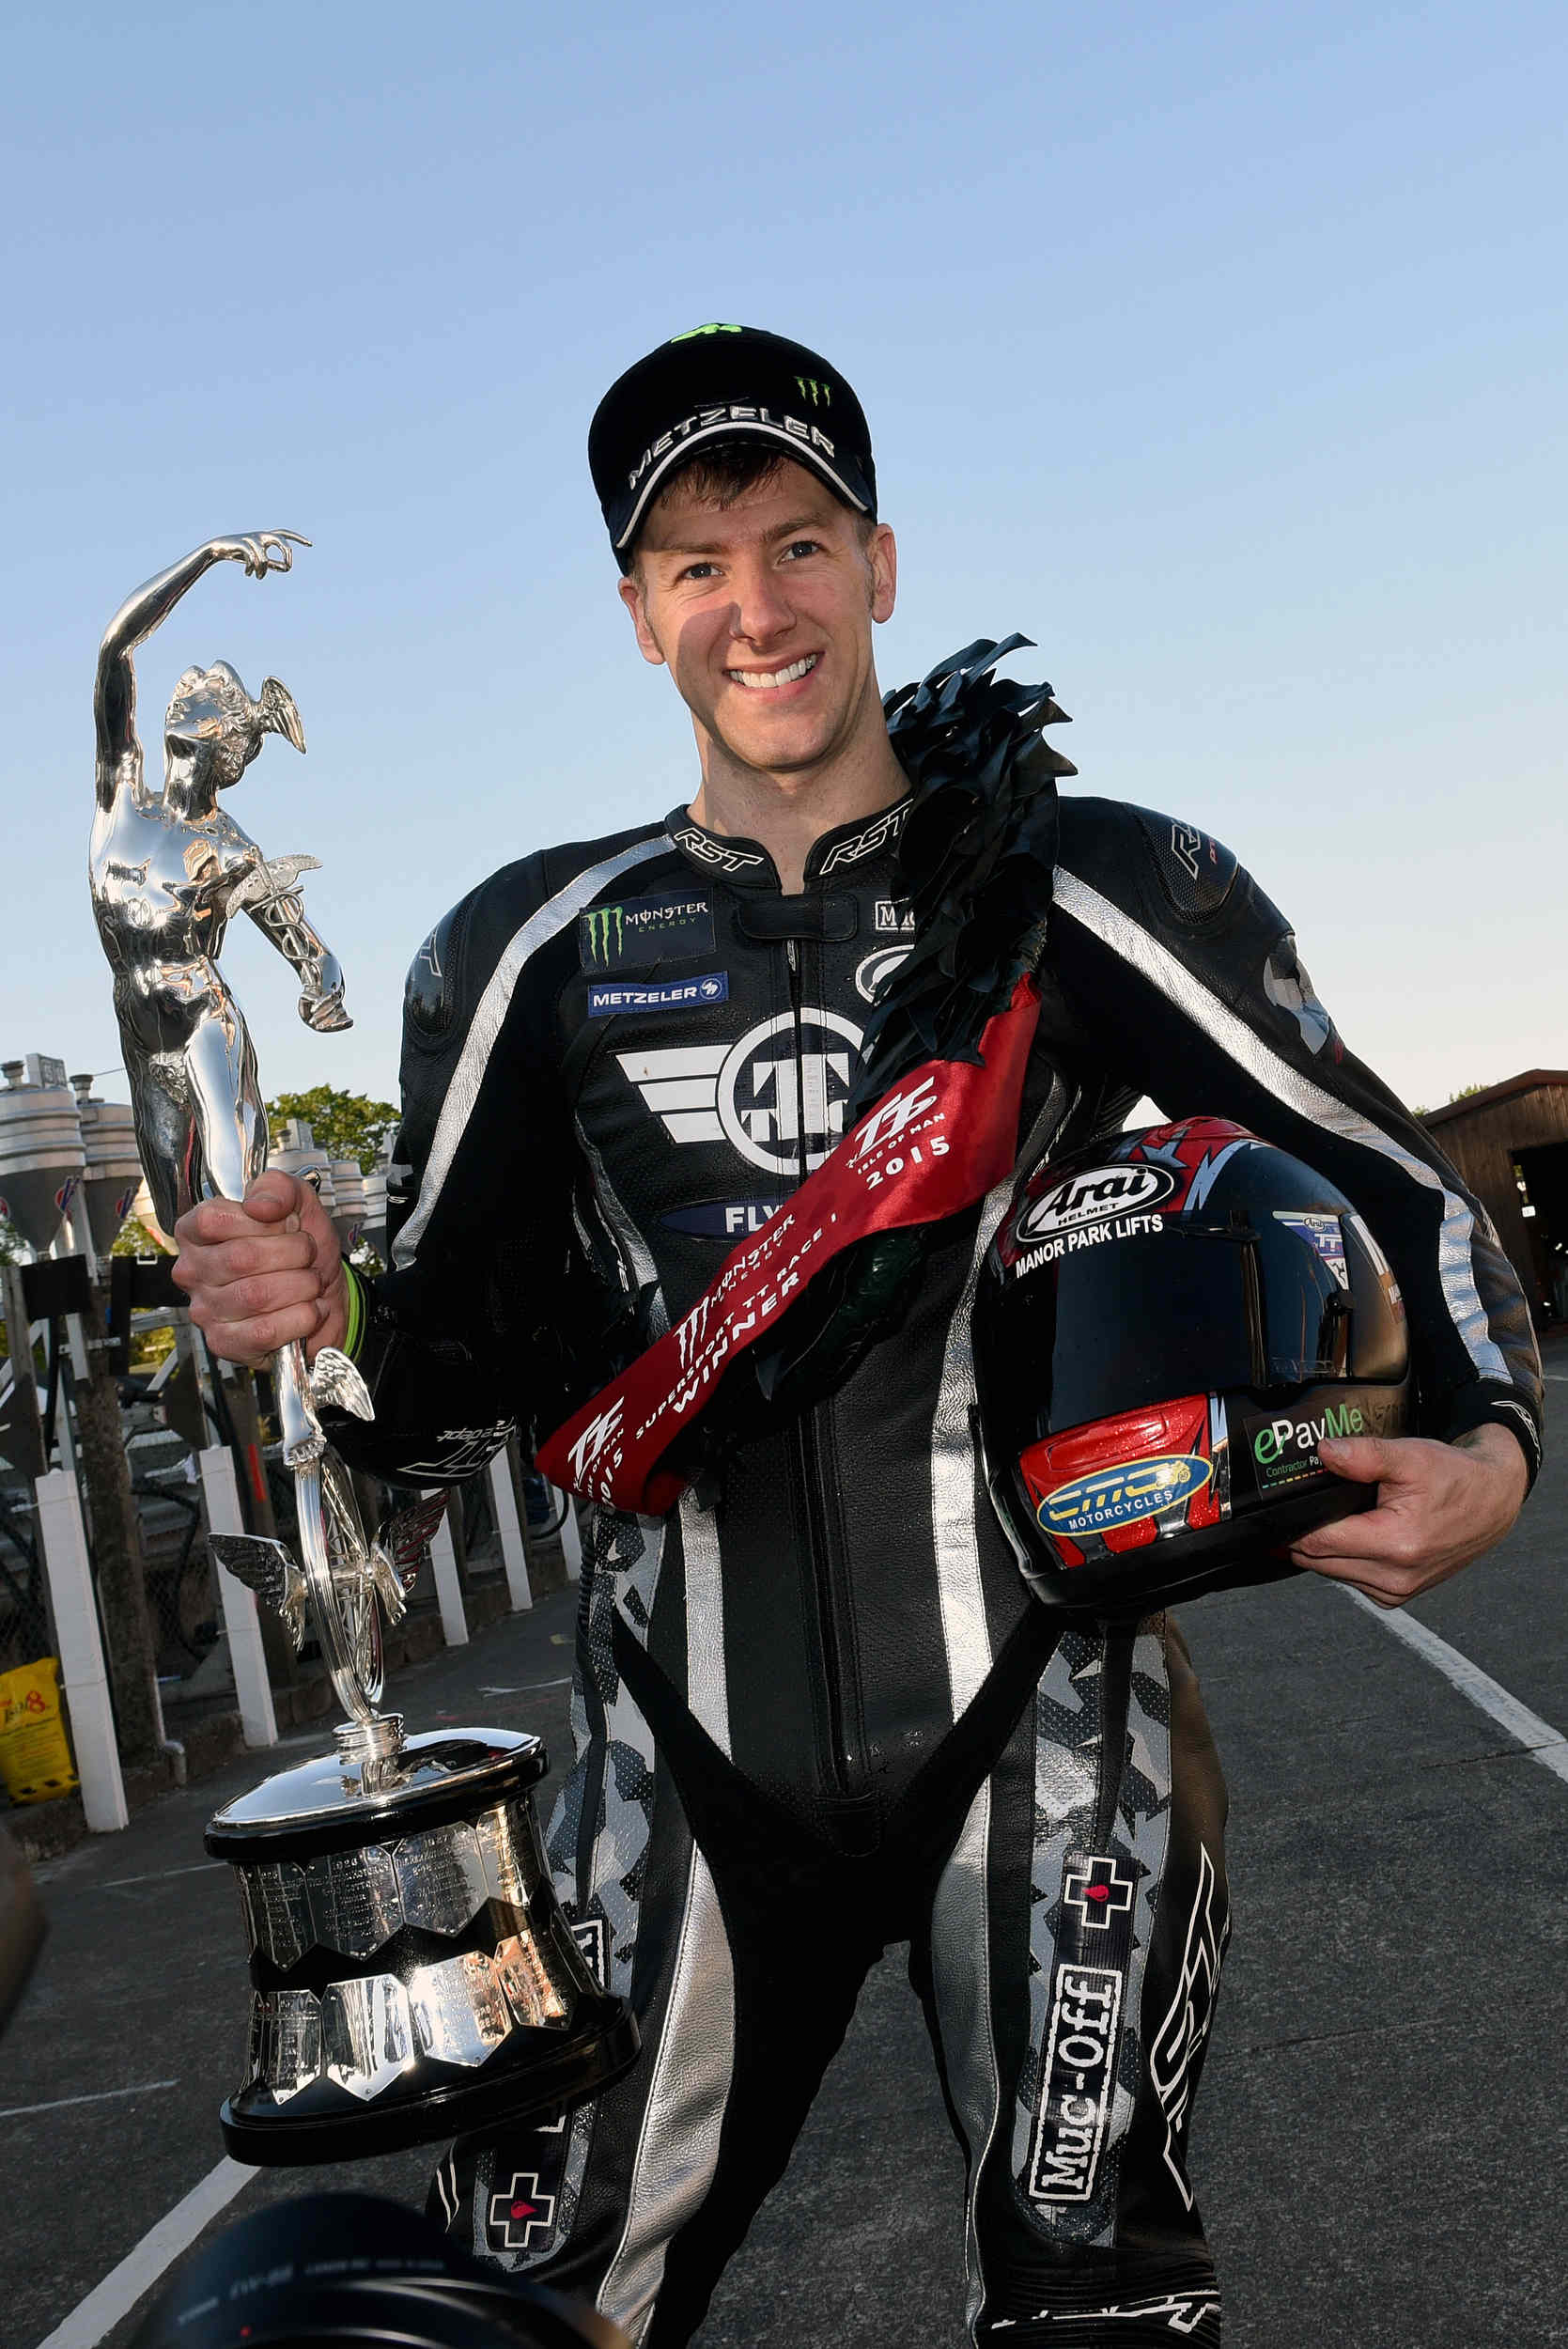 Superbike TT 2015 winner Ian Hutchinson